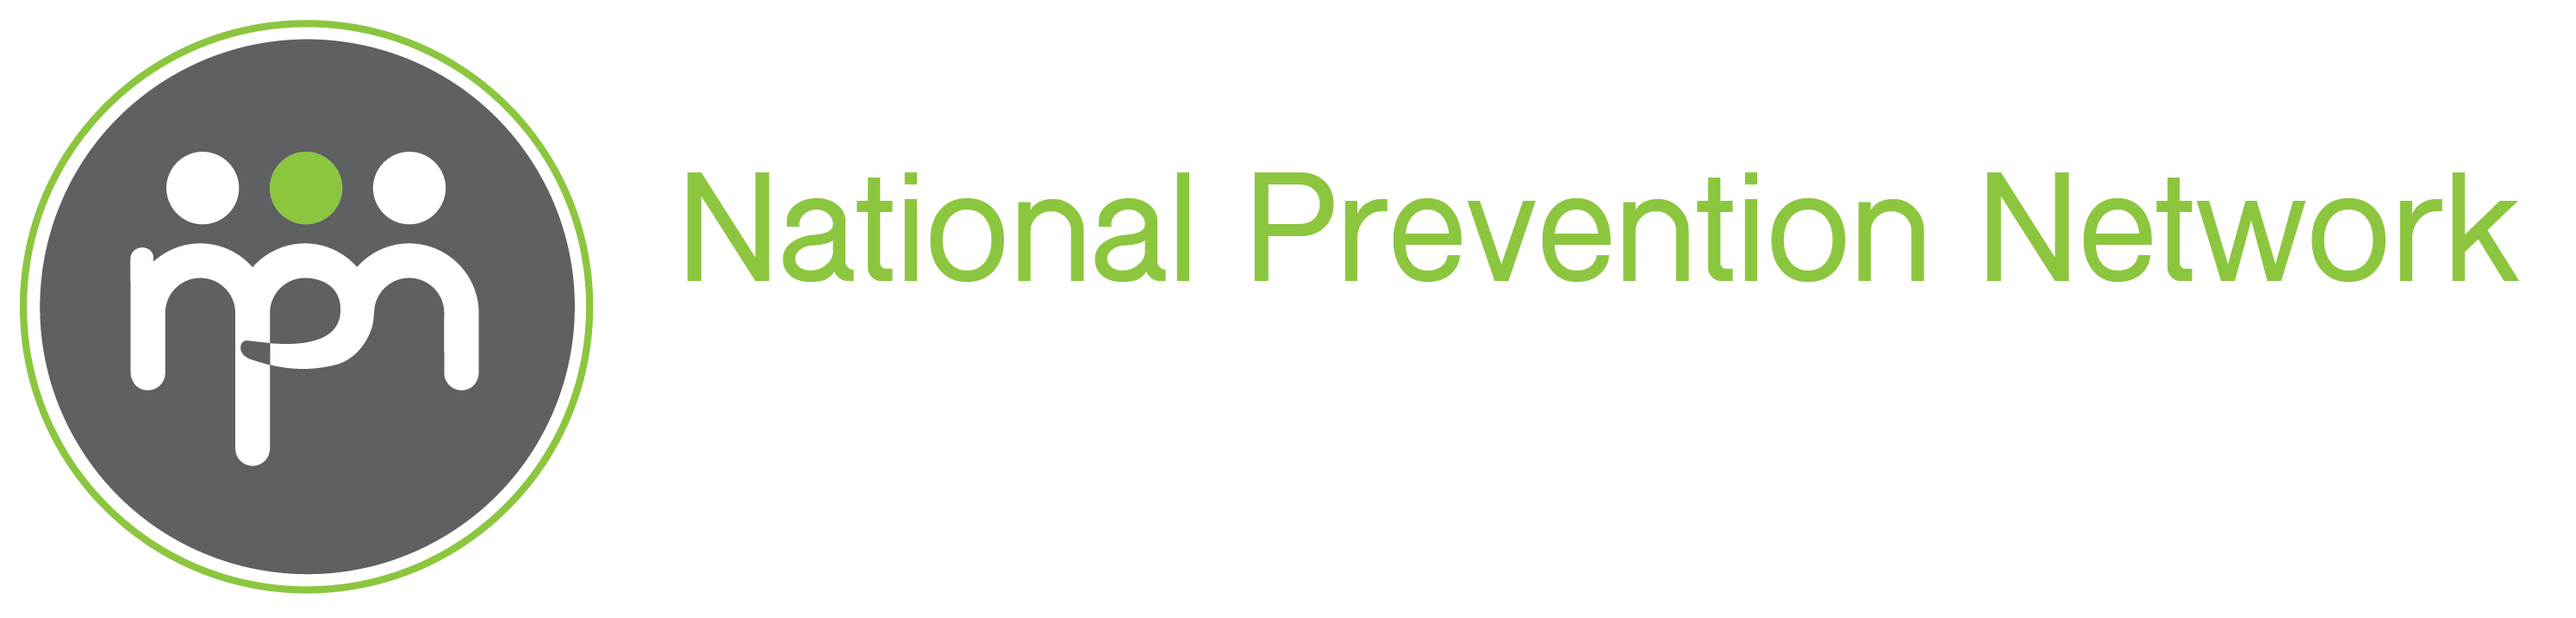 National Prevention Network Conference